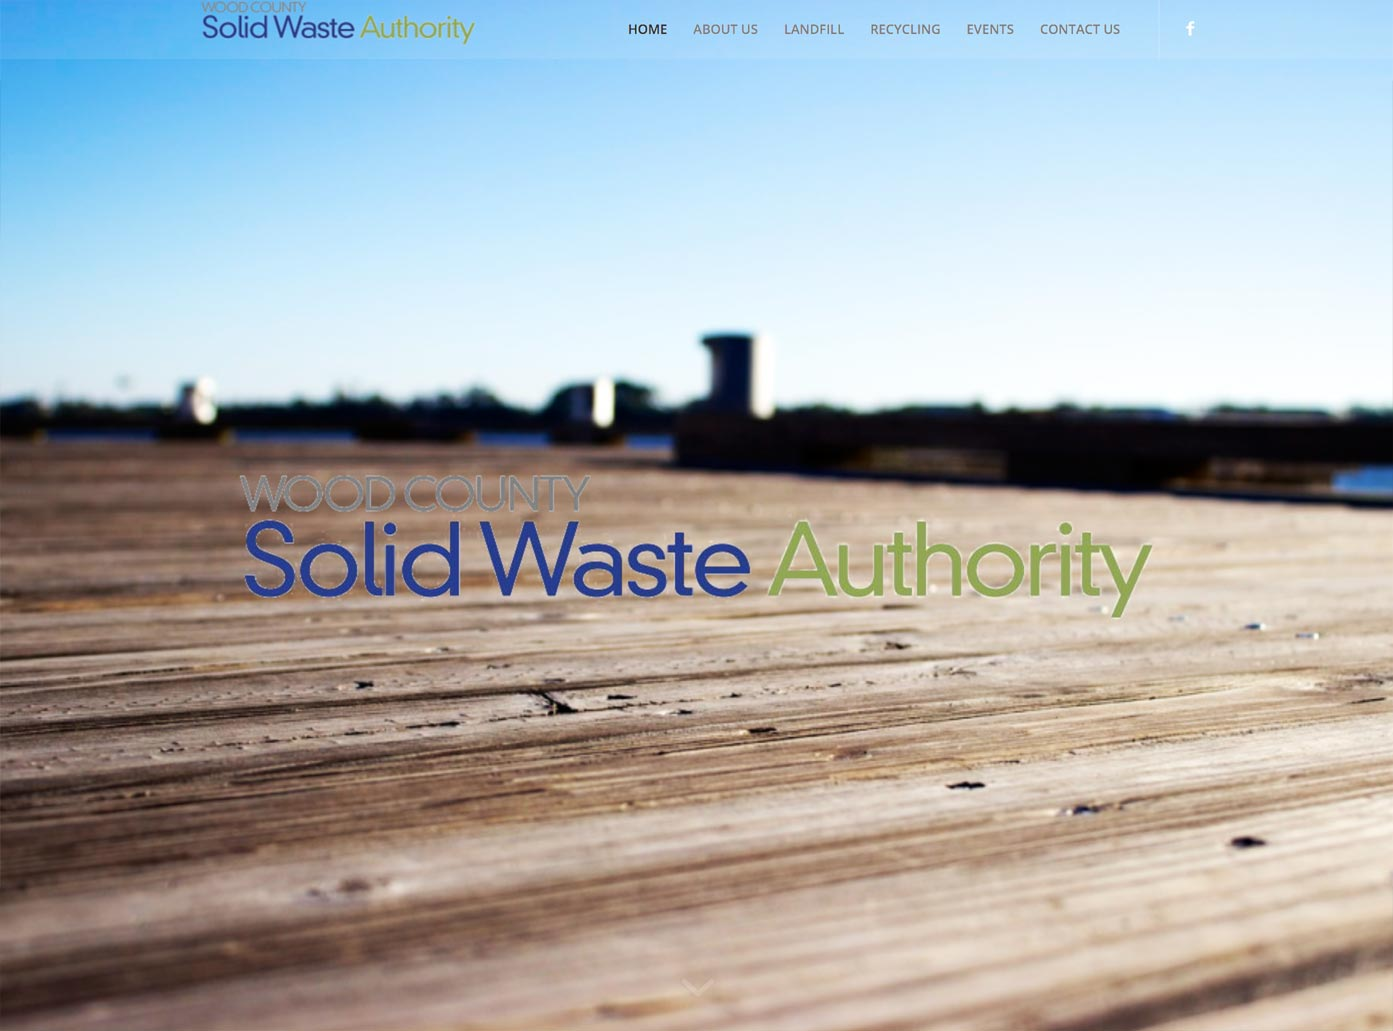 Wood County Solid Waste Authority